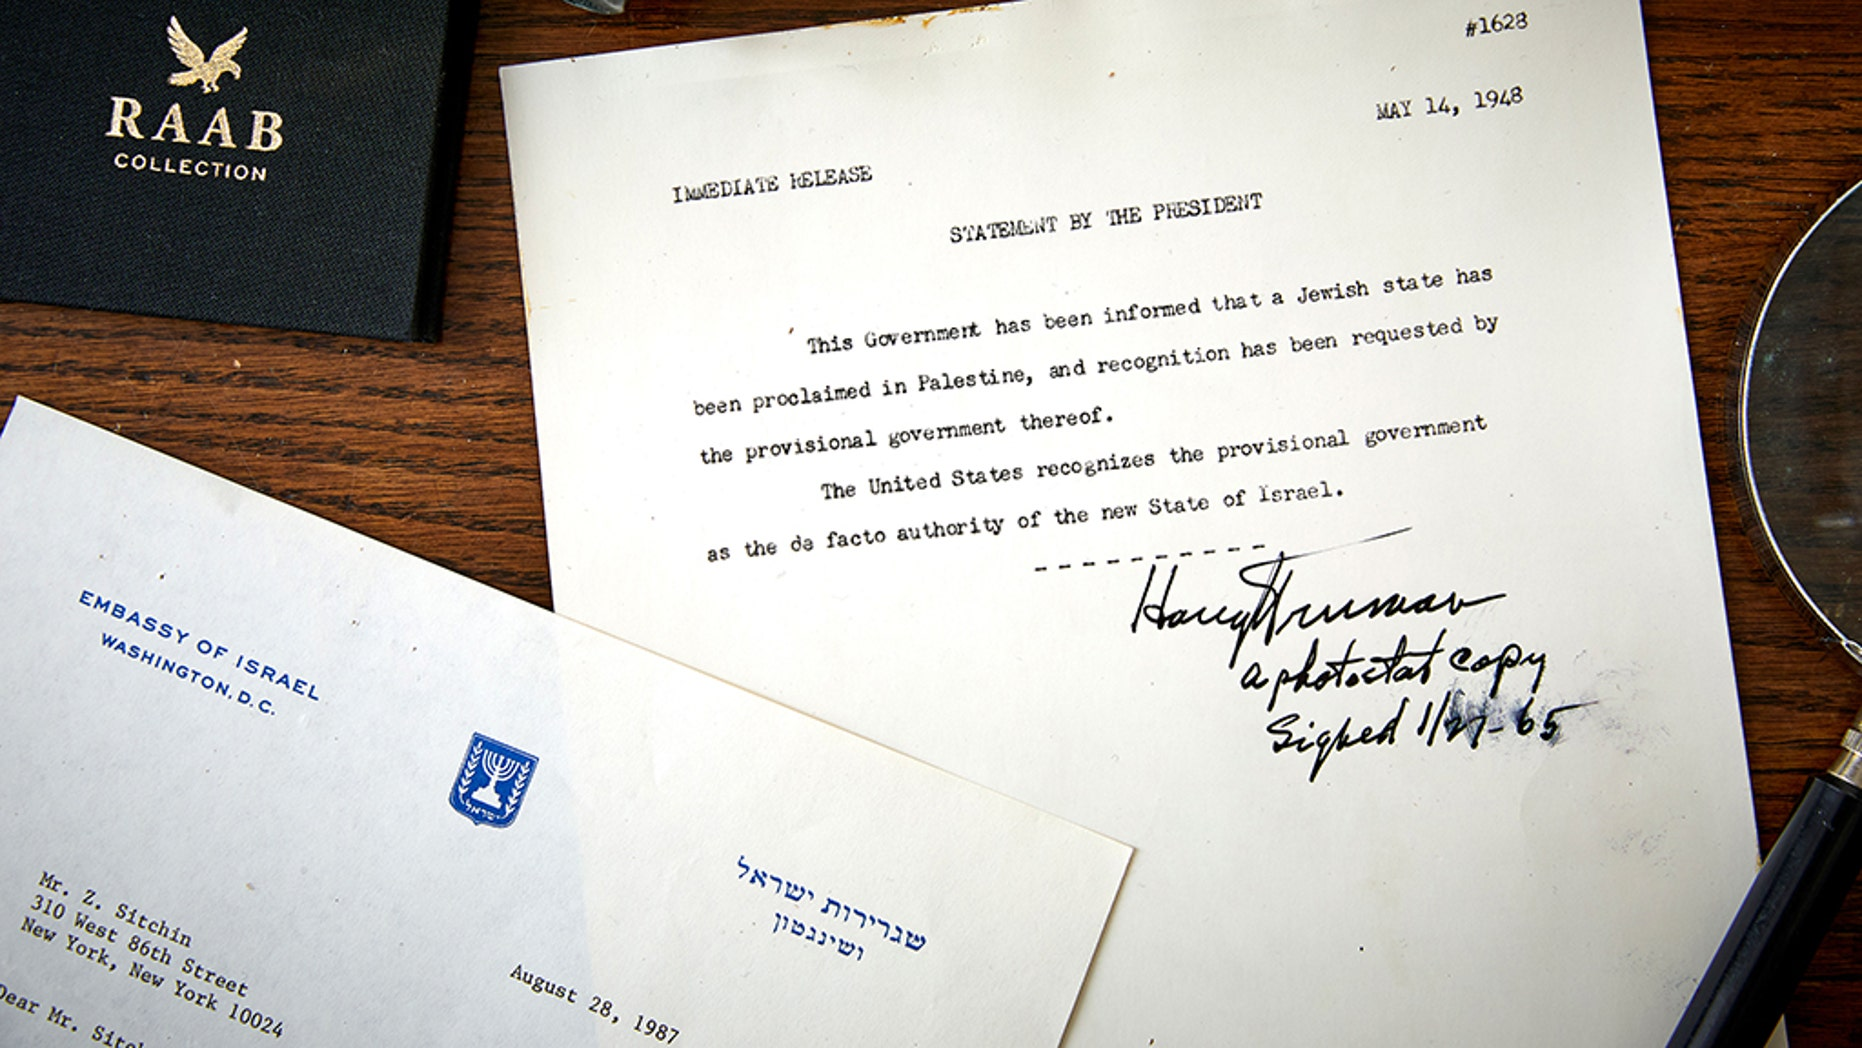 U.S. President Harry S. Truman was the first world leader to recognize the state of Israel in 1948, but he didn't sign the official statement until years later. It is now for sale.